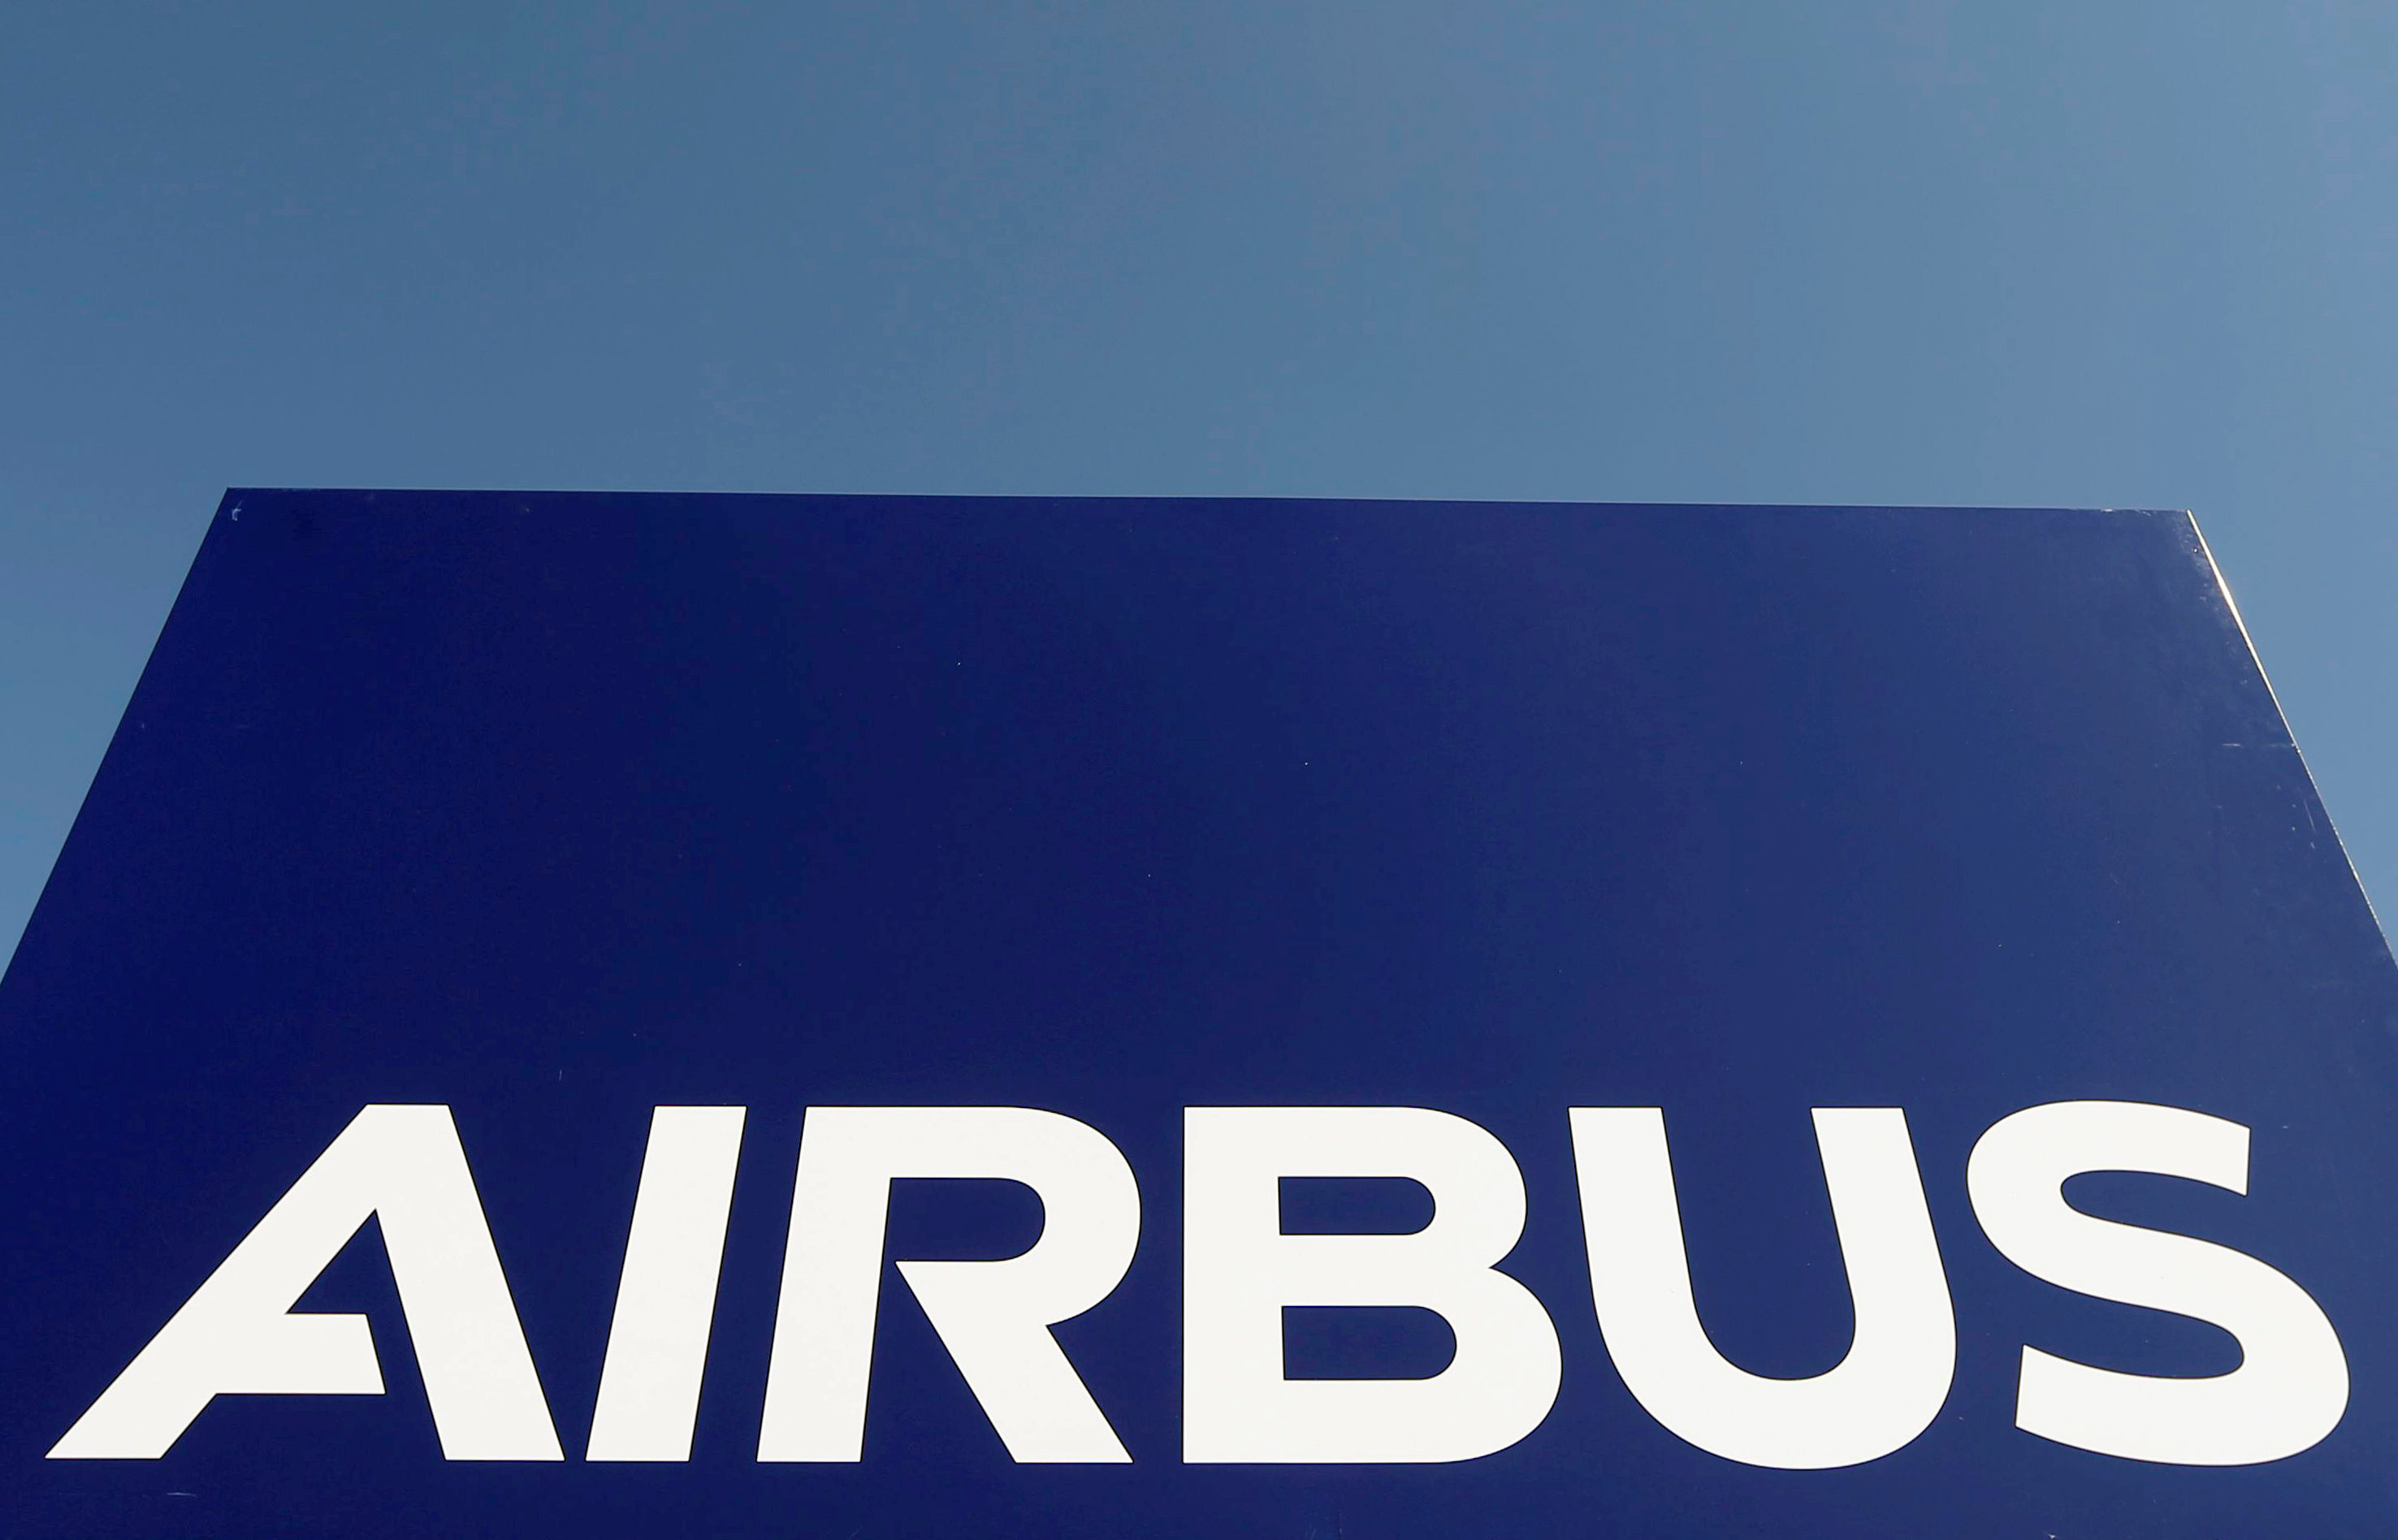 Airbus delivers record 800 commercial aircraft in 2018